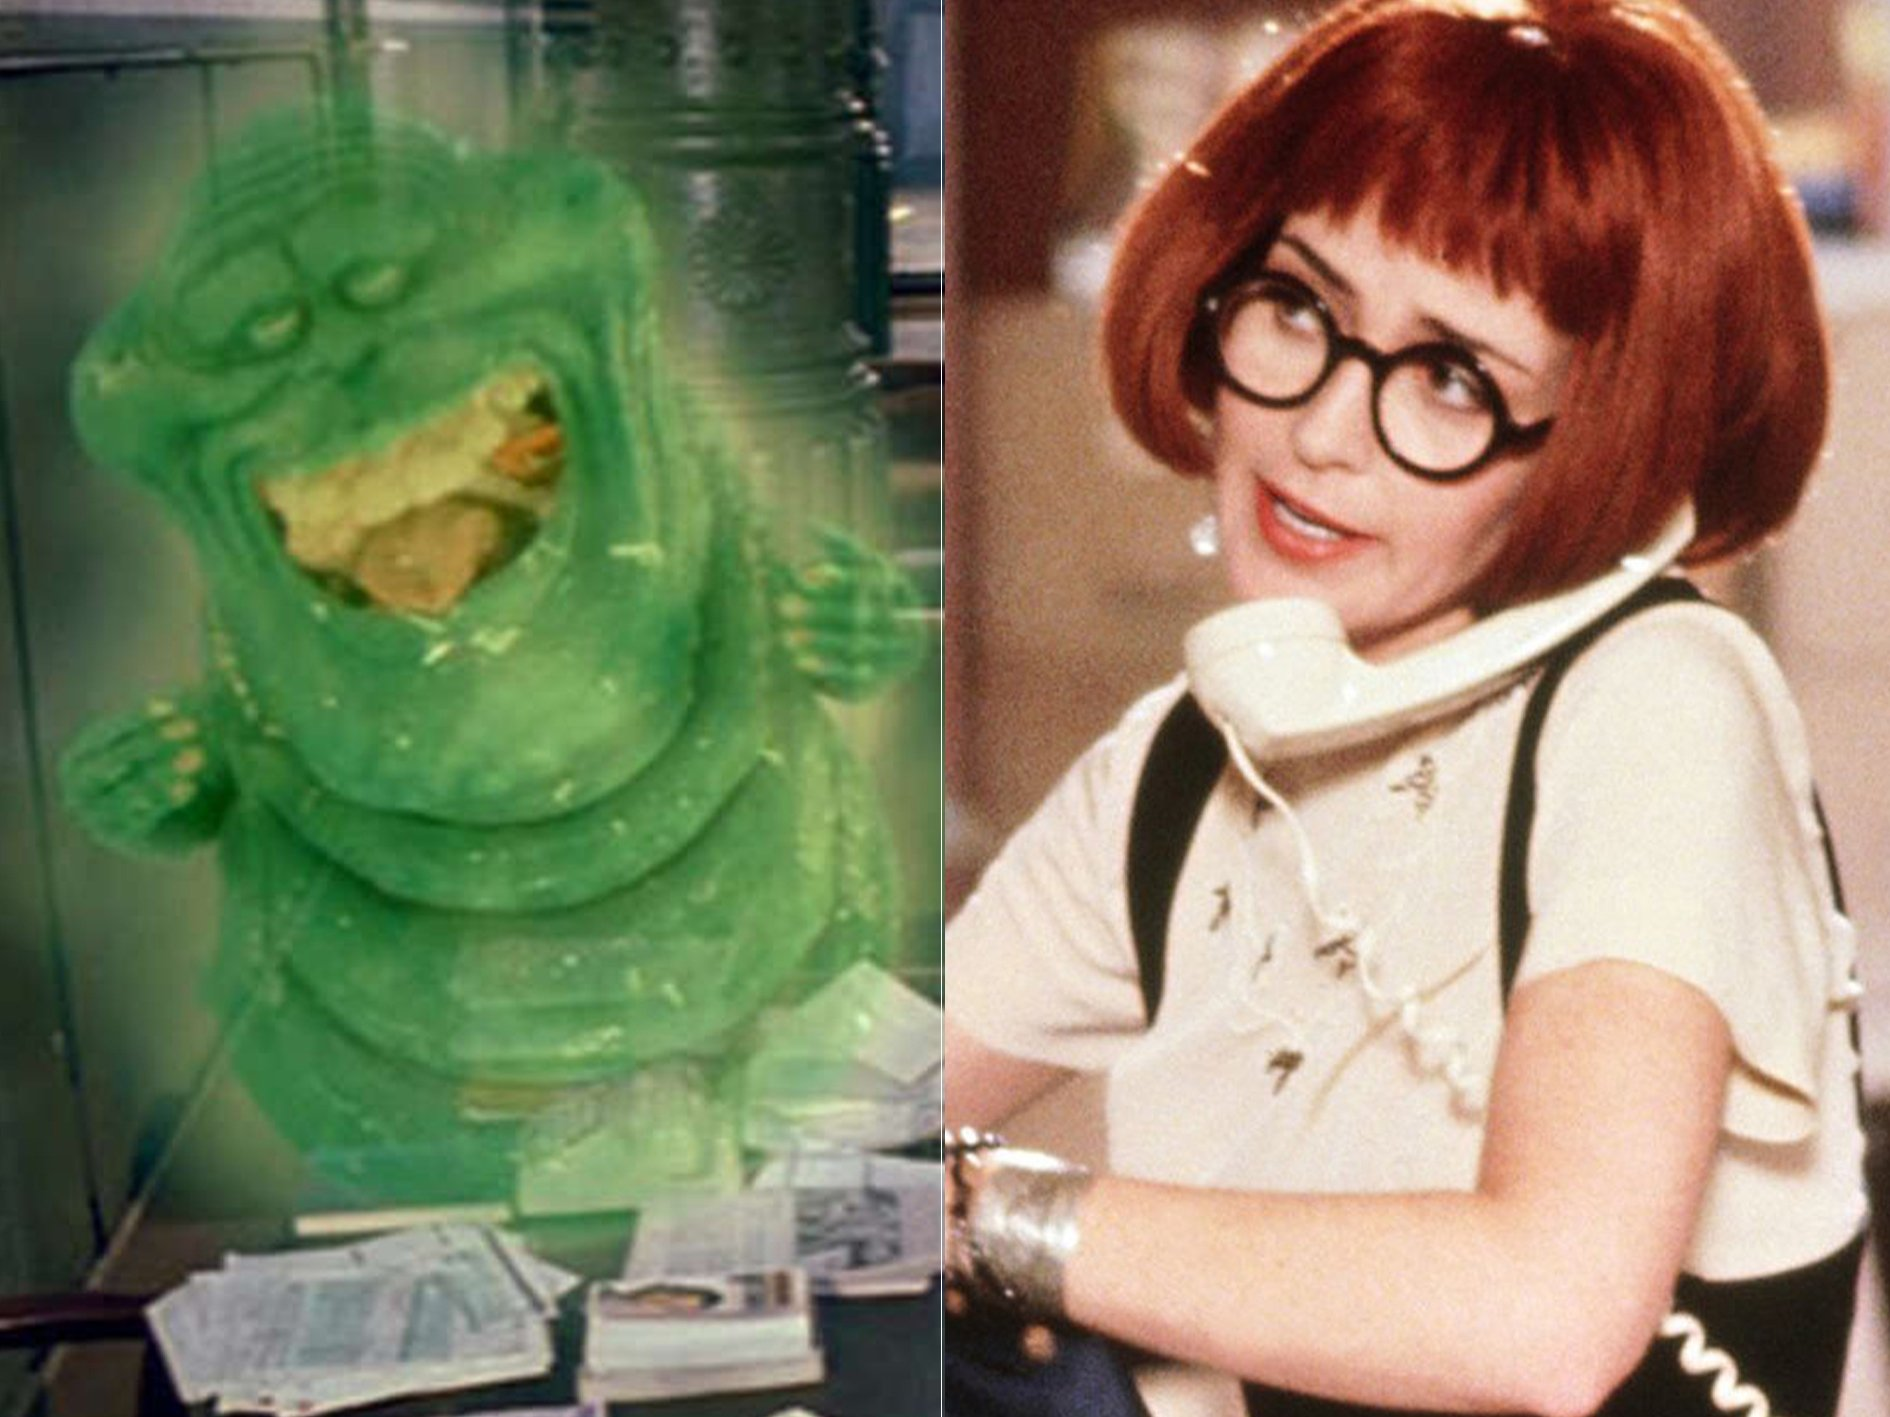 Ghostbusters 2 Slimer Janine Spooky Facts You Probably Never Knew About Ghostbusters II